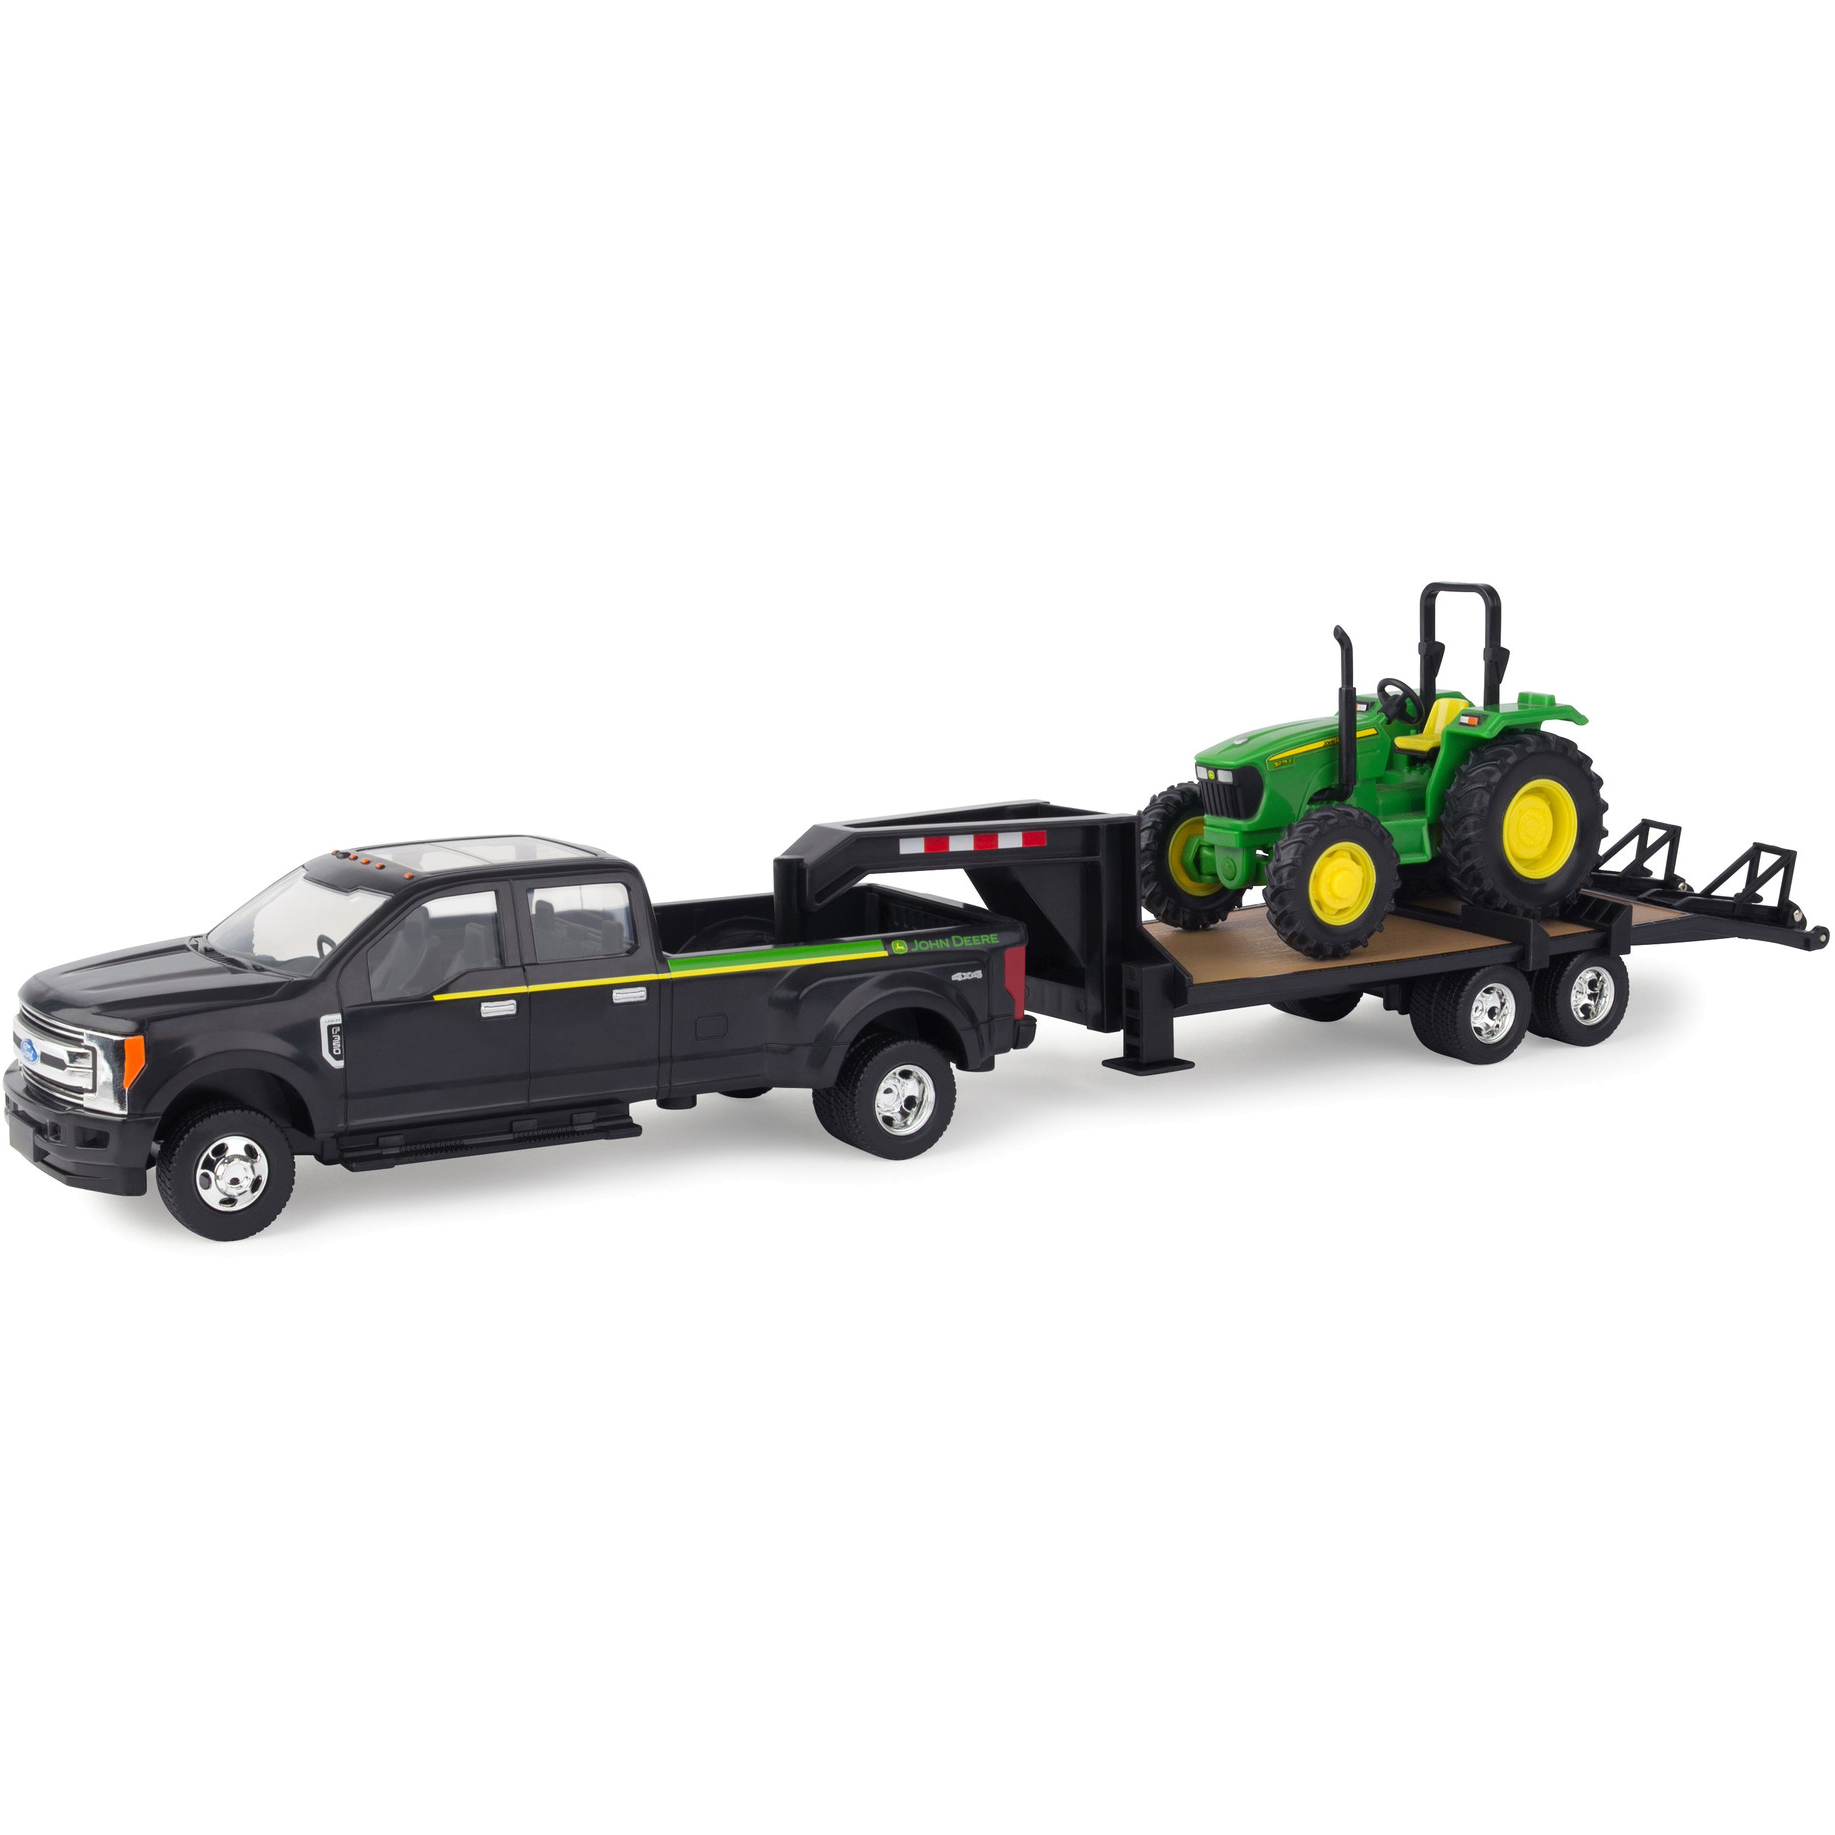 1:32 2017 Ford F350 with Gooseneck and John Deere 1:32 5075E Tractor by TOMY